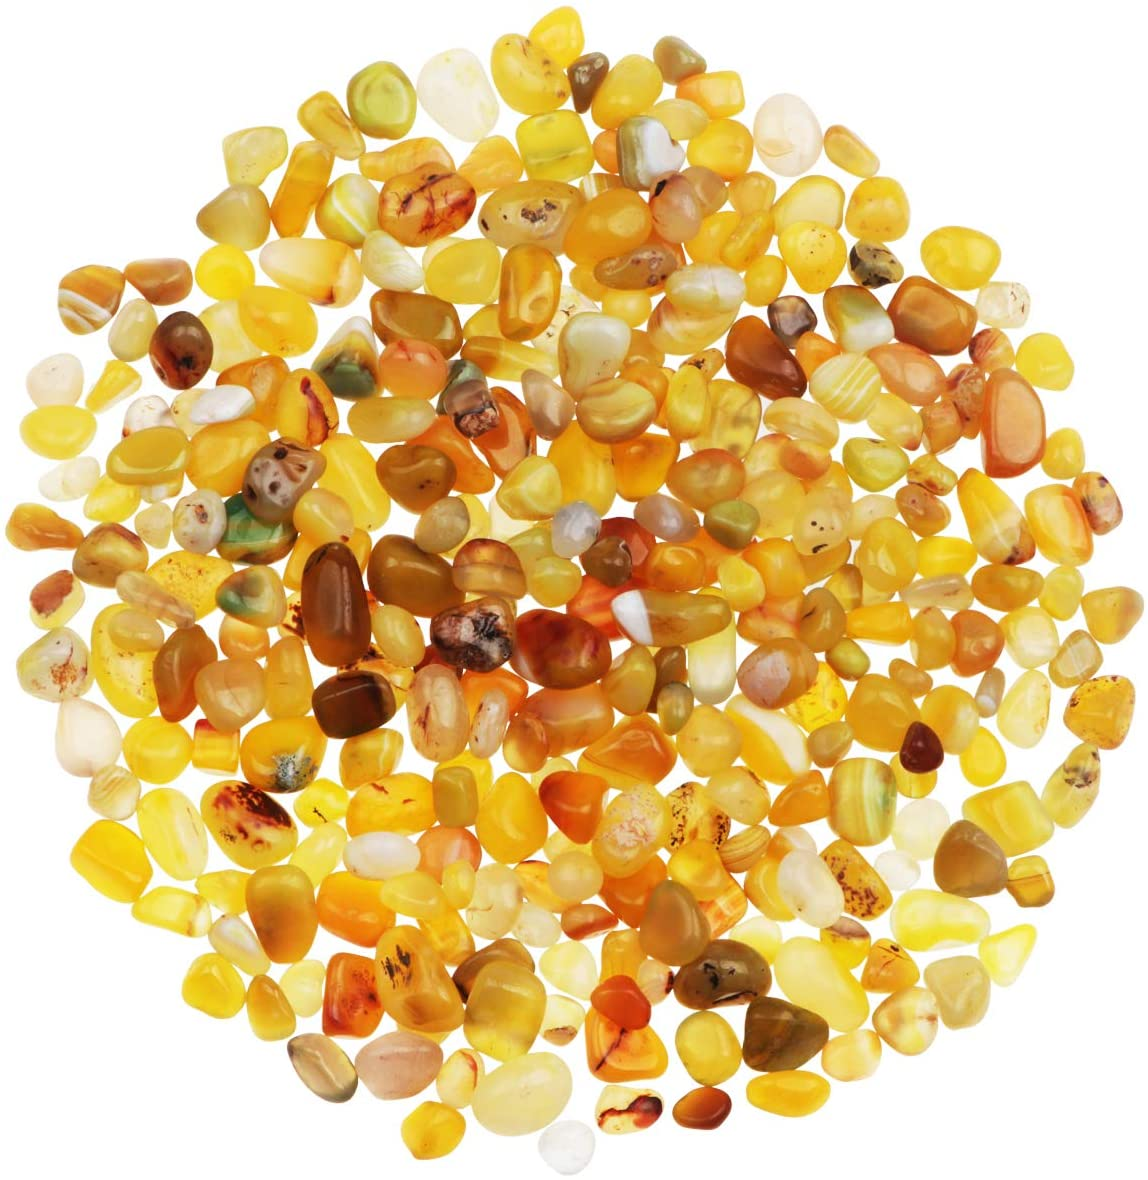 YiYa 0.68 lb Yellow Agate Stone Tumbled Stones Gemstone Natural Crystal Quartz for Home Decoration Vase Filler Swimming Pool Bottom Decoration (About 310g/Bag)